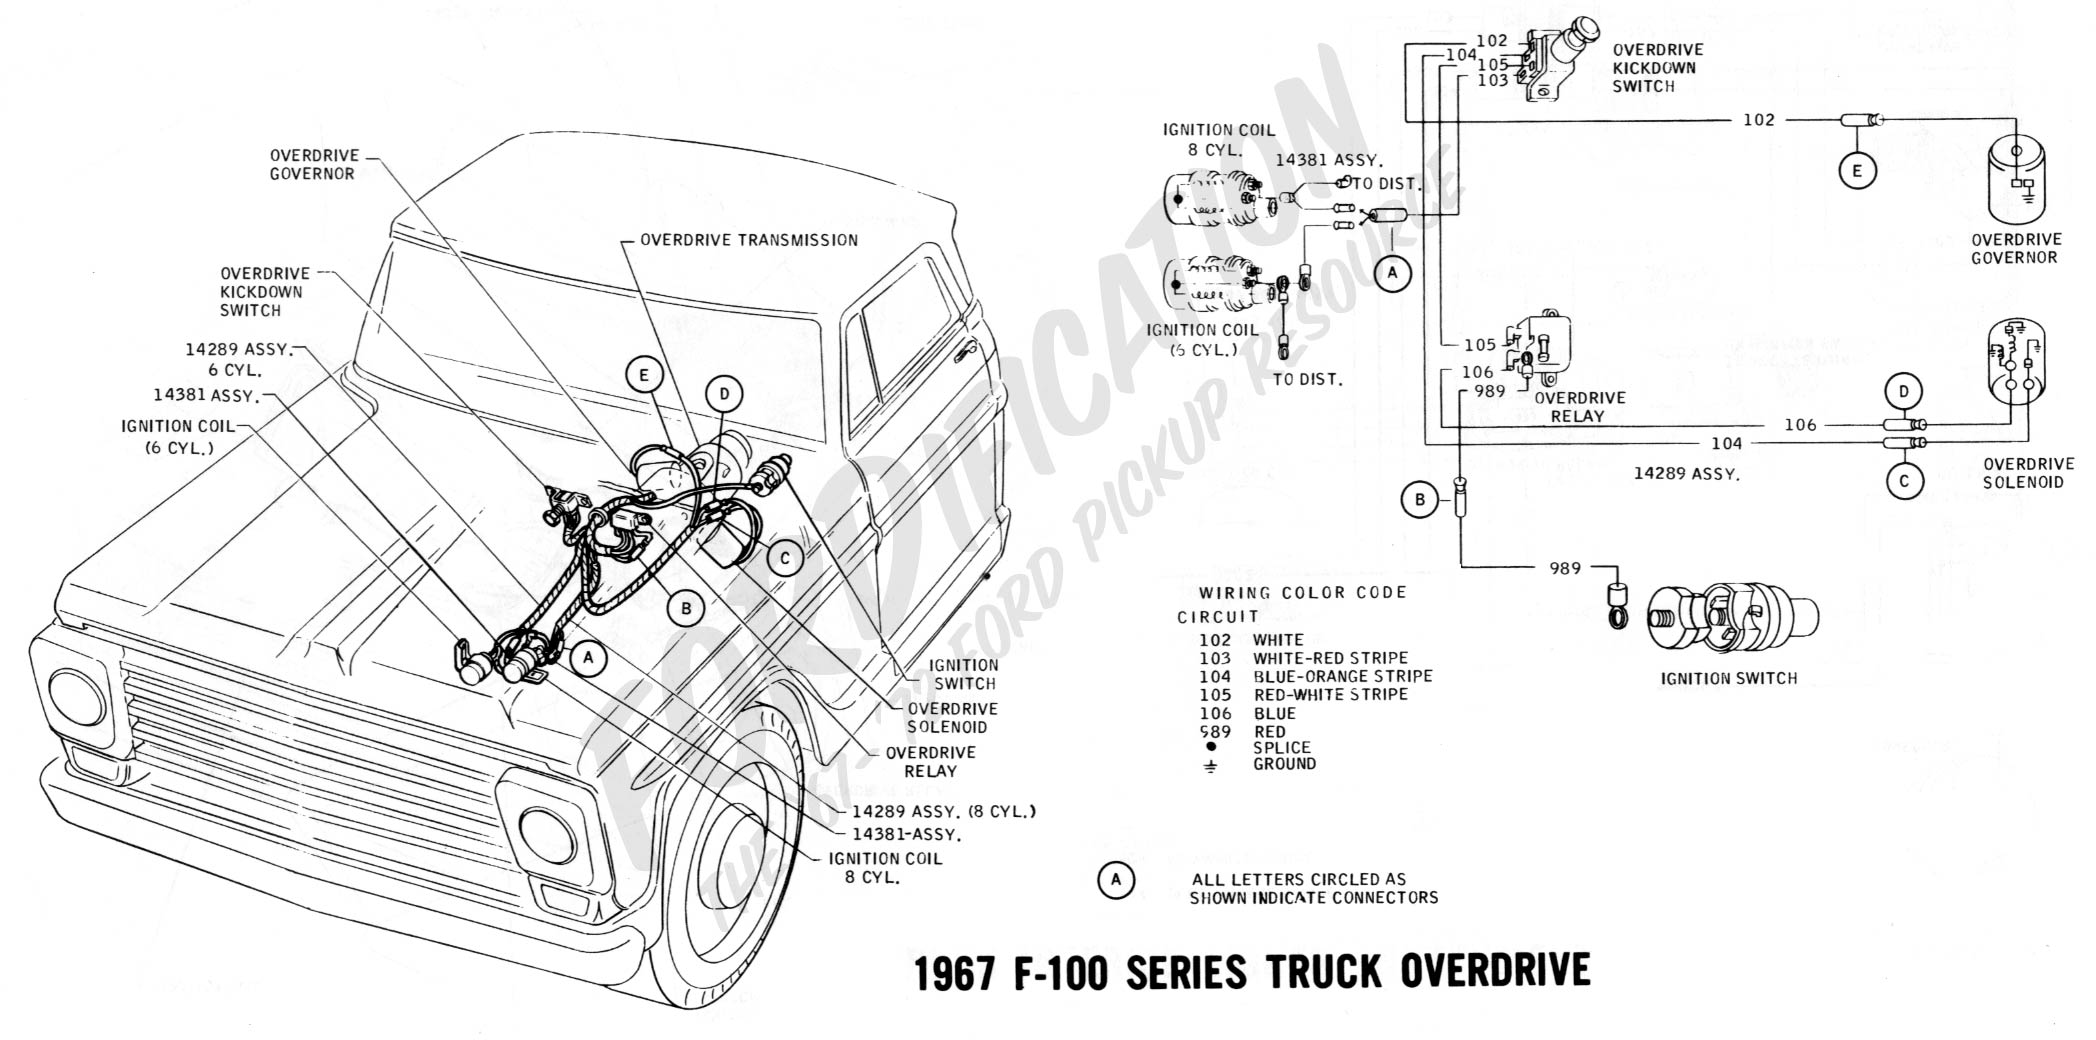 1967 Ford F100 Fuse Box Circuit Diagram Schema F750 Panel 1968 Data Wiring Rocker